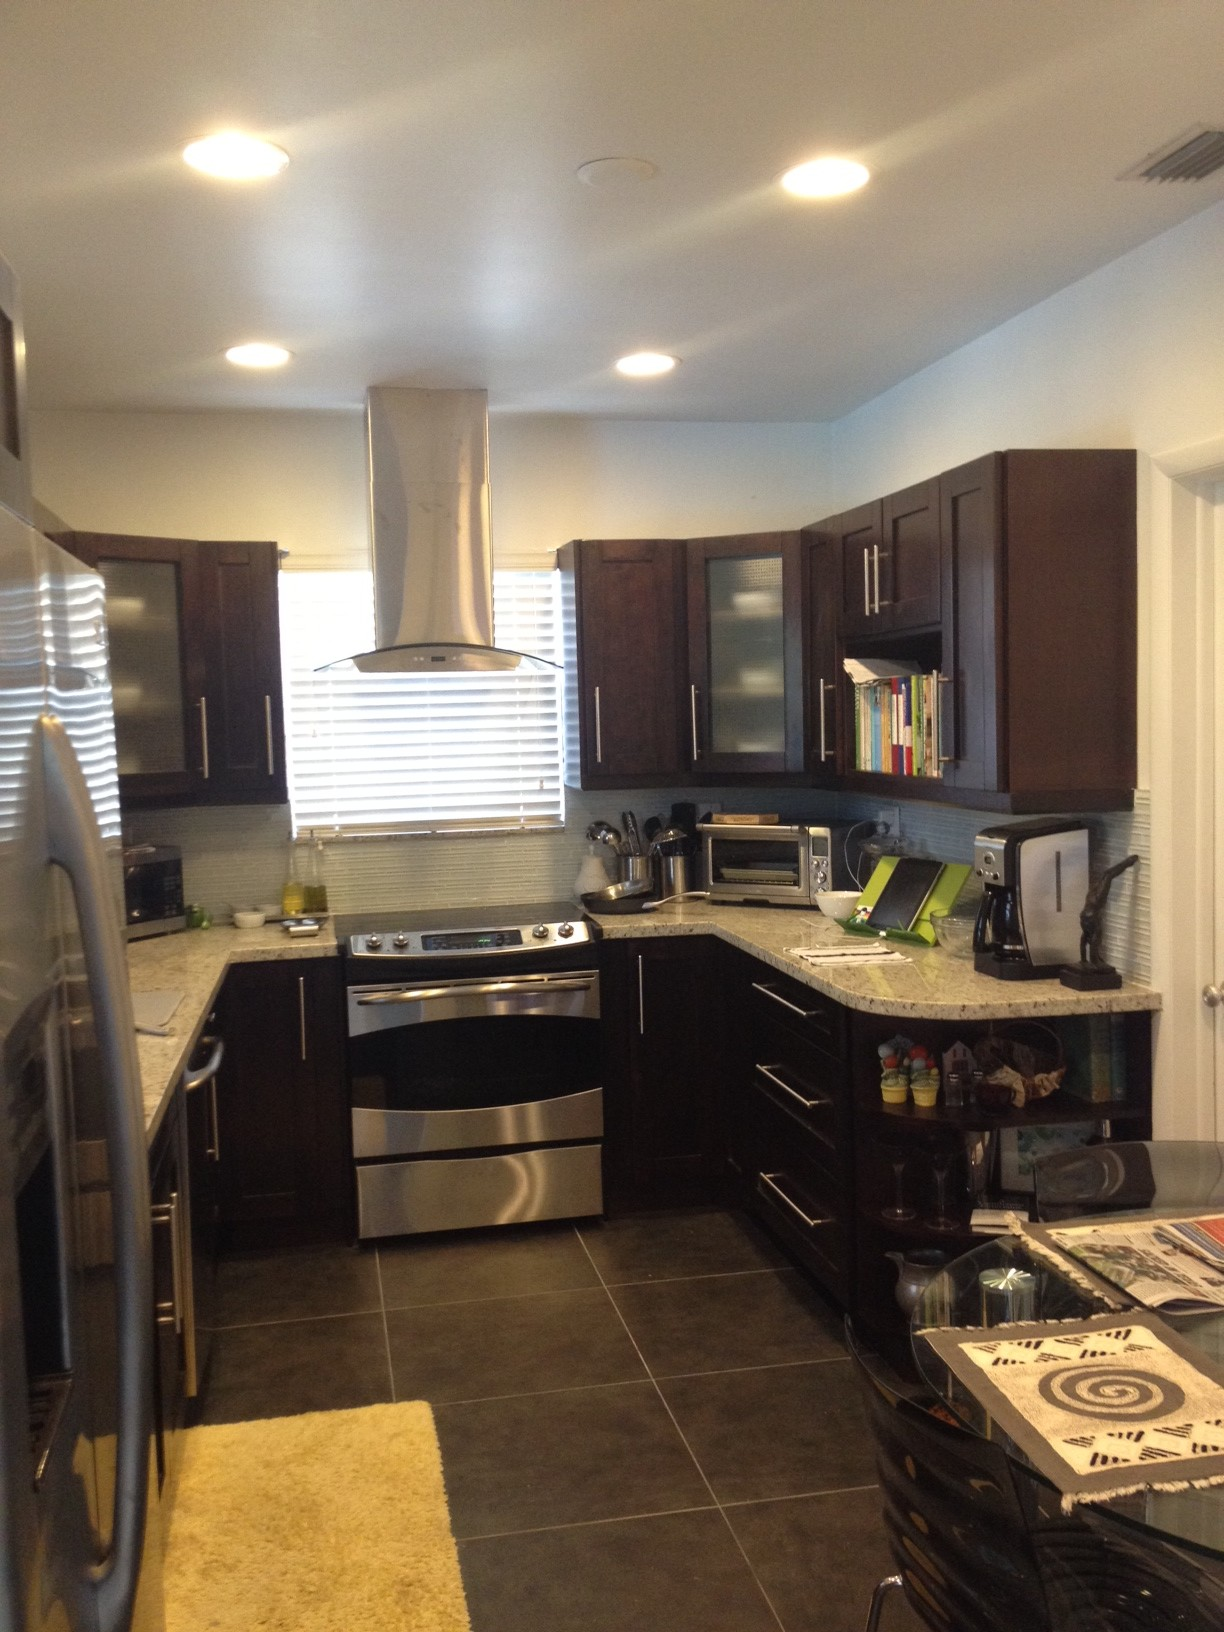 4 kitchen remodeling miami Remodeled Kitchen in South Miami in a modern style